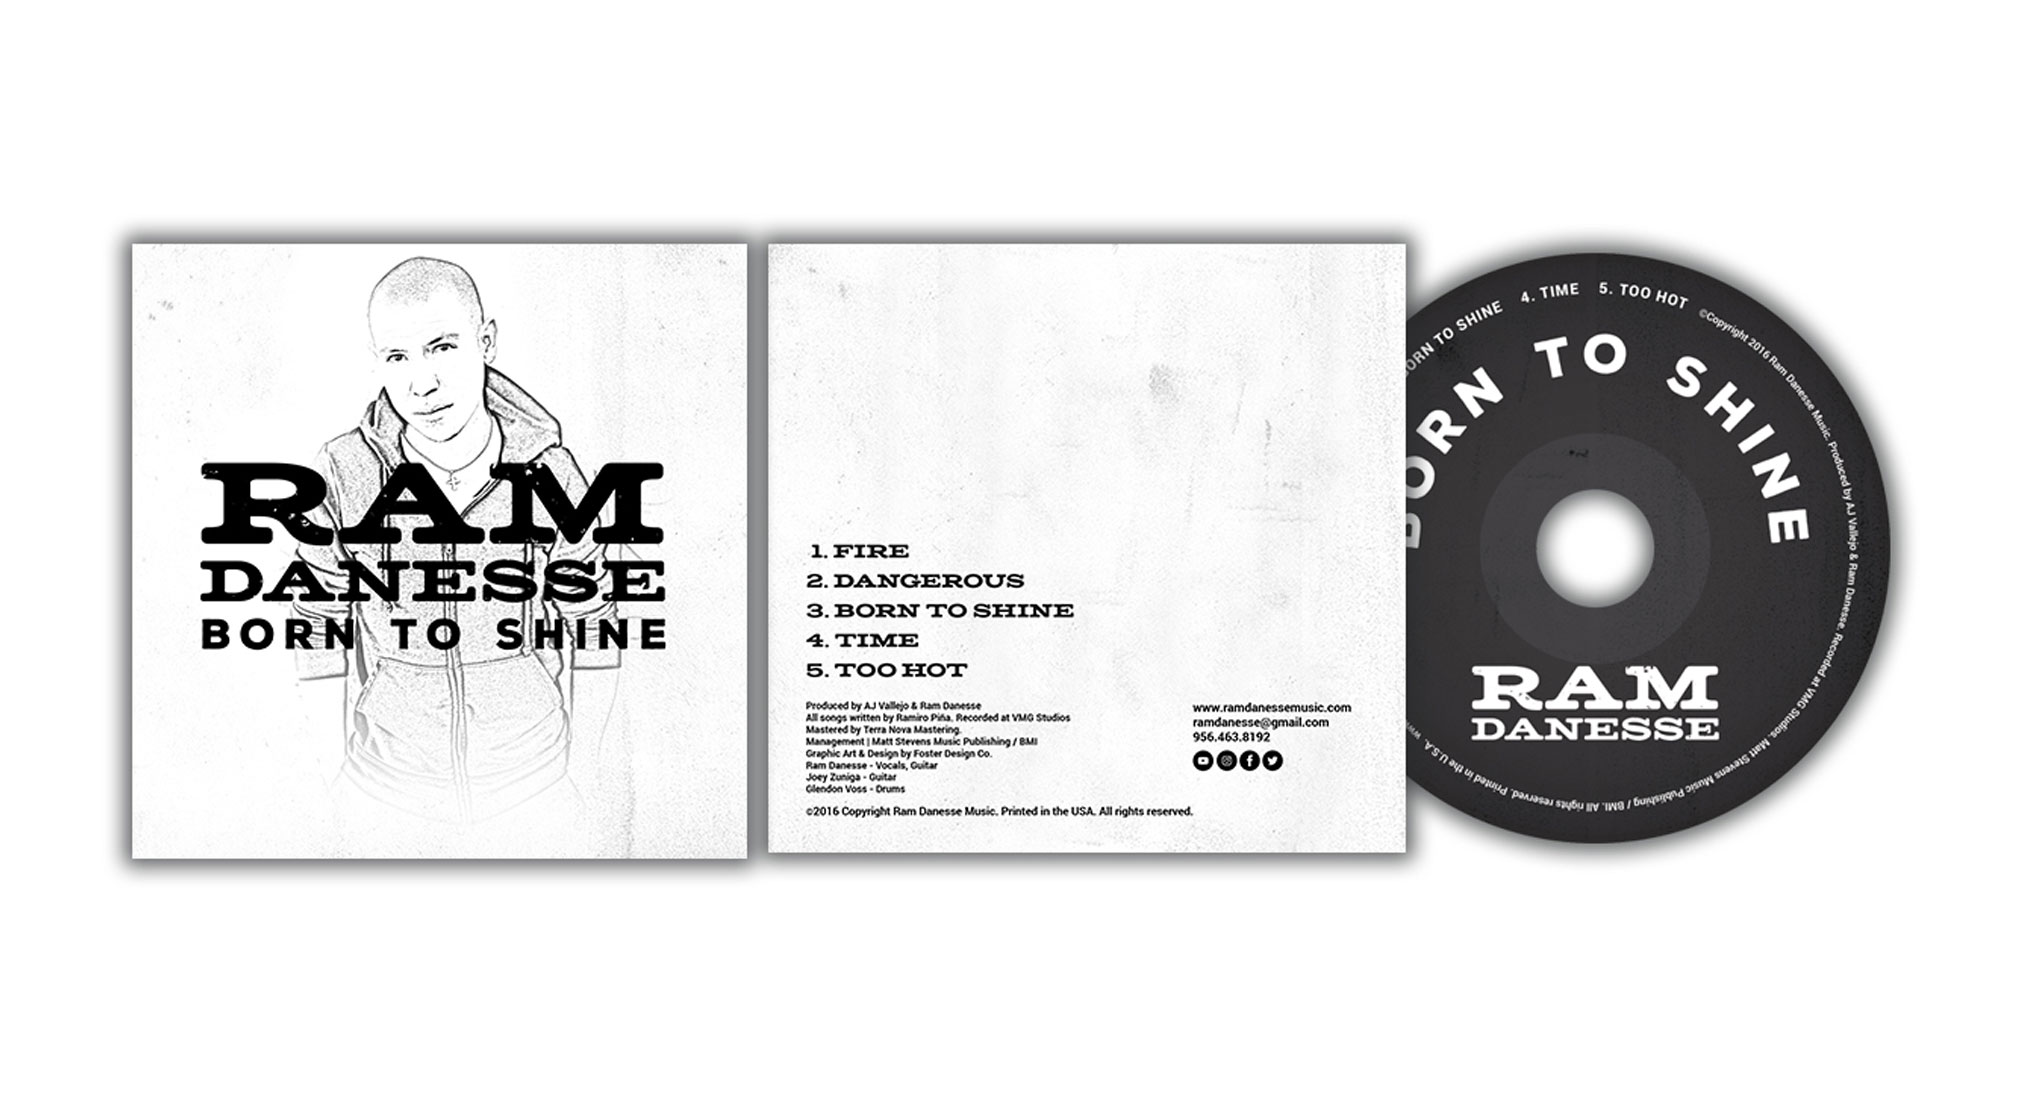 Born to Shine CD Design